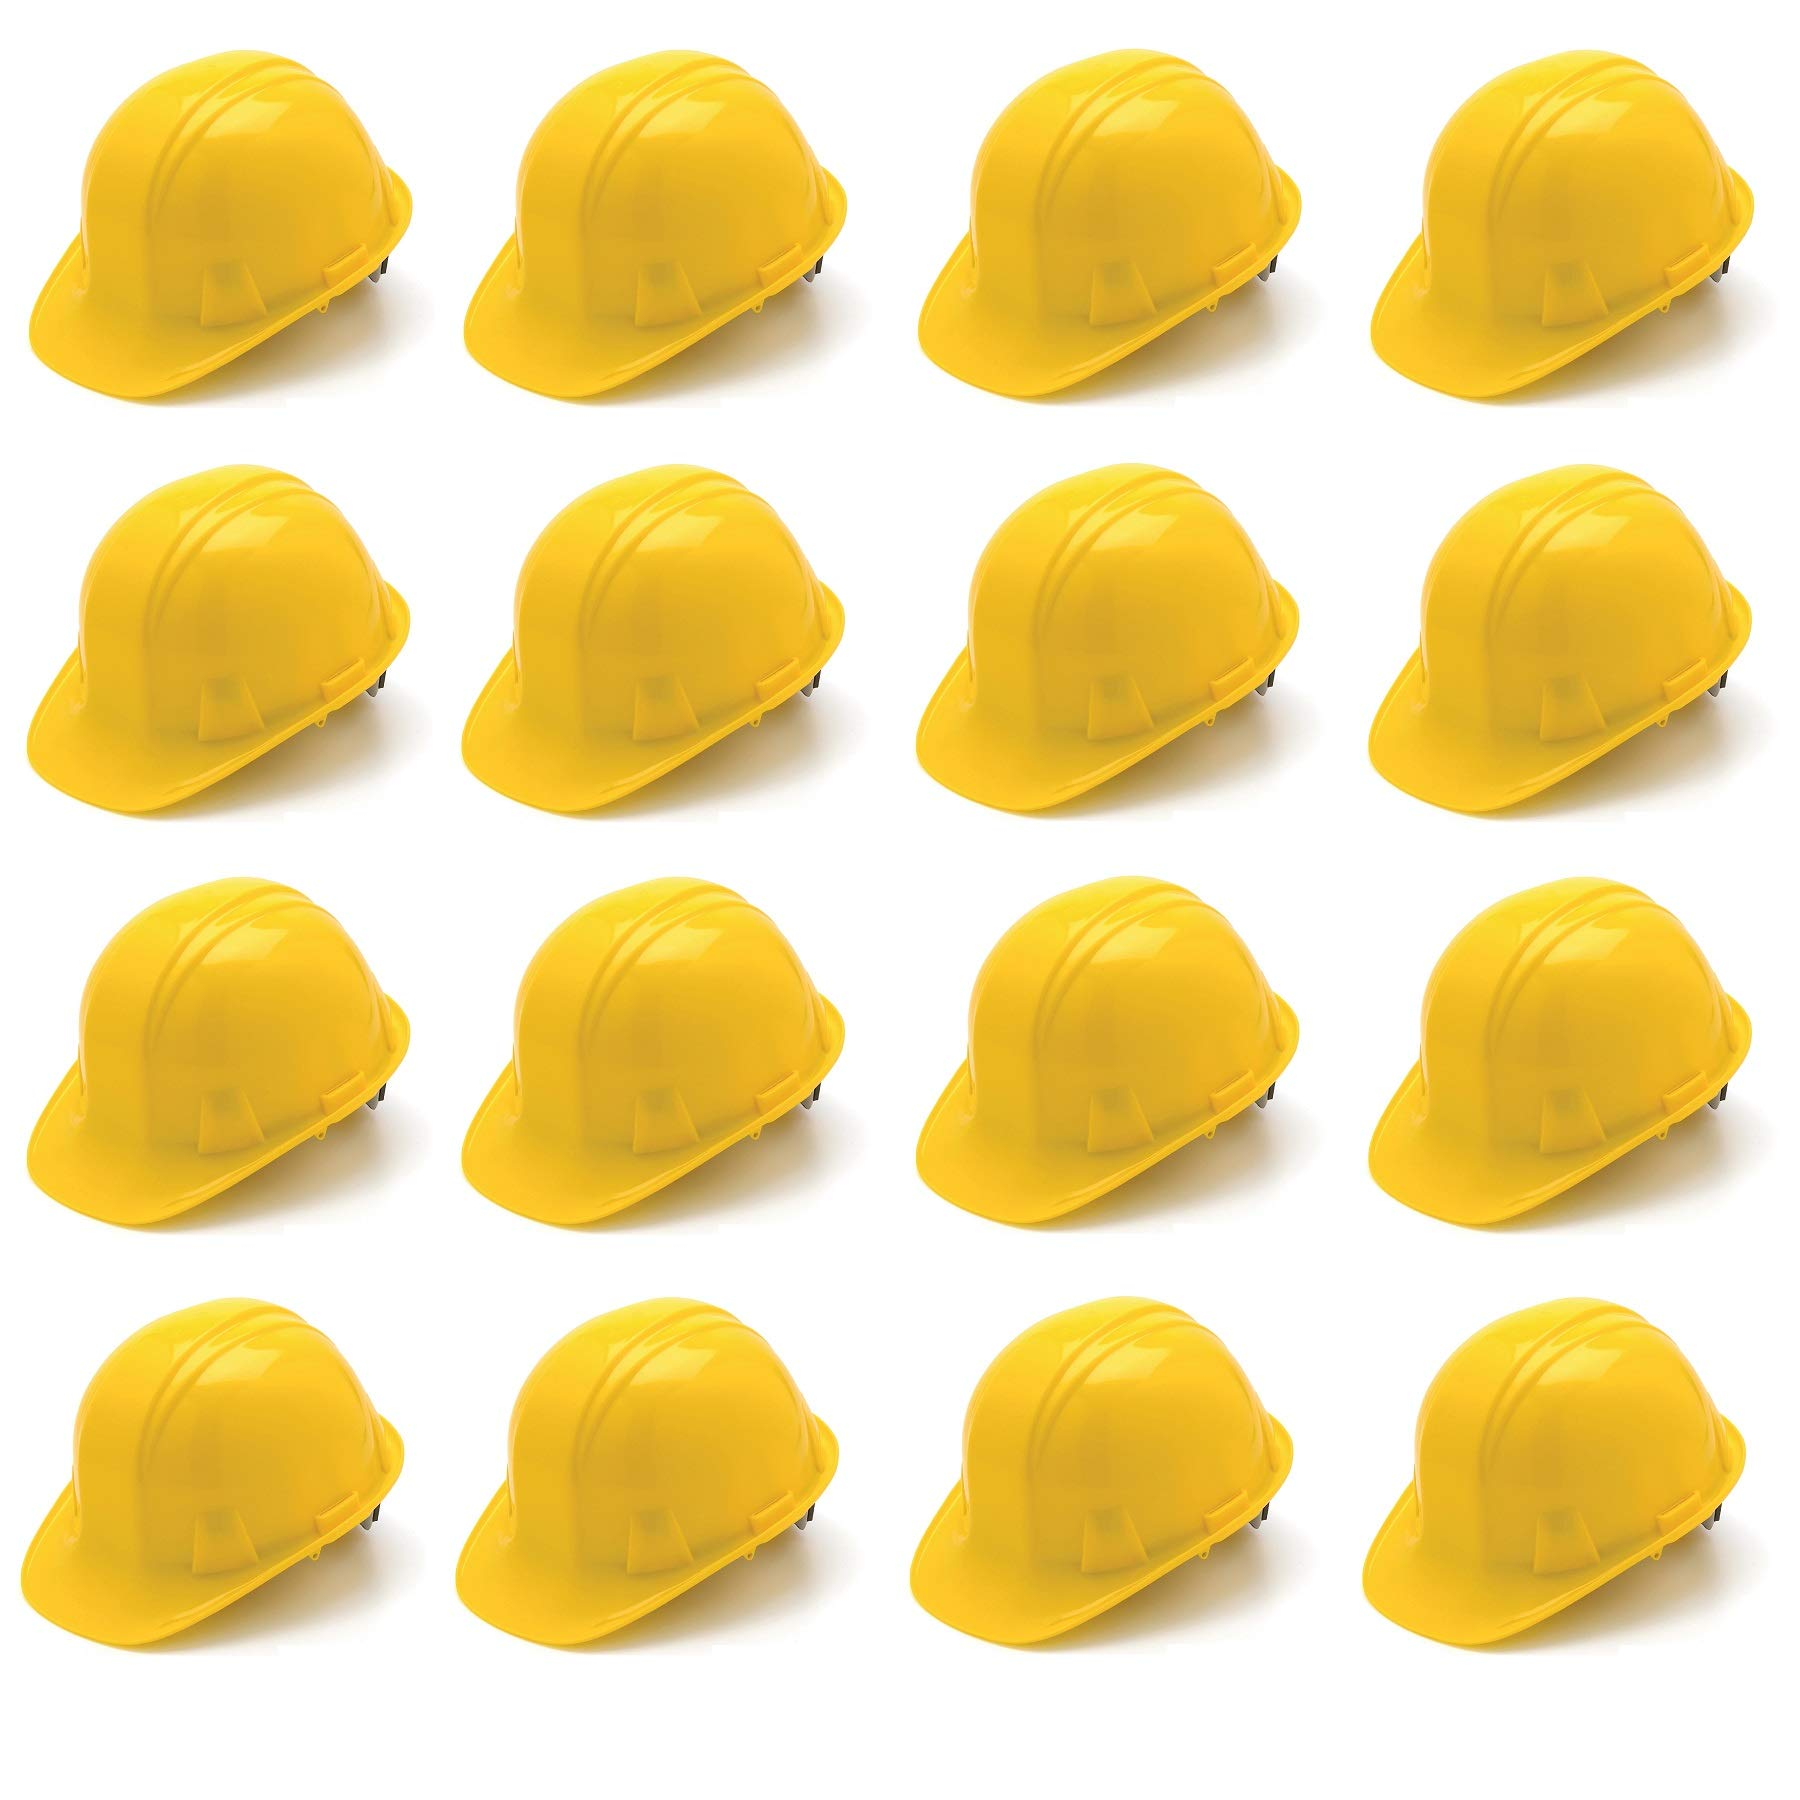 Pyramex SL Series Cap Style Hard Hat with 4 Point Ratchet Suspension Yellow HP14130 (16 Hats/1 Case)